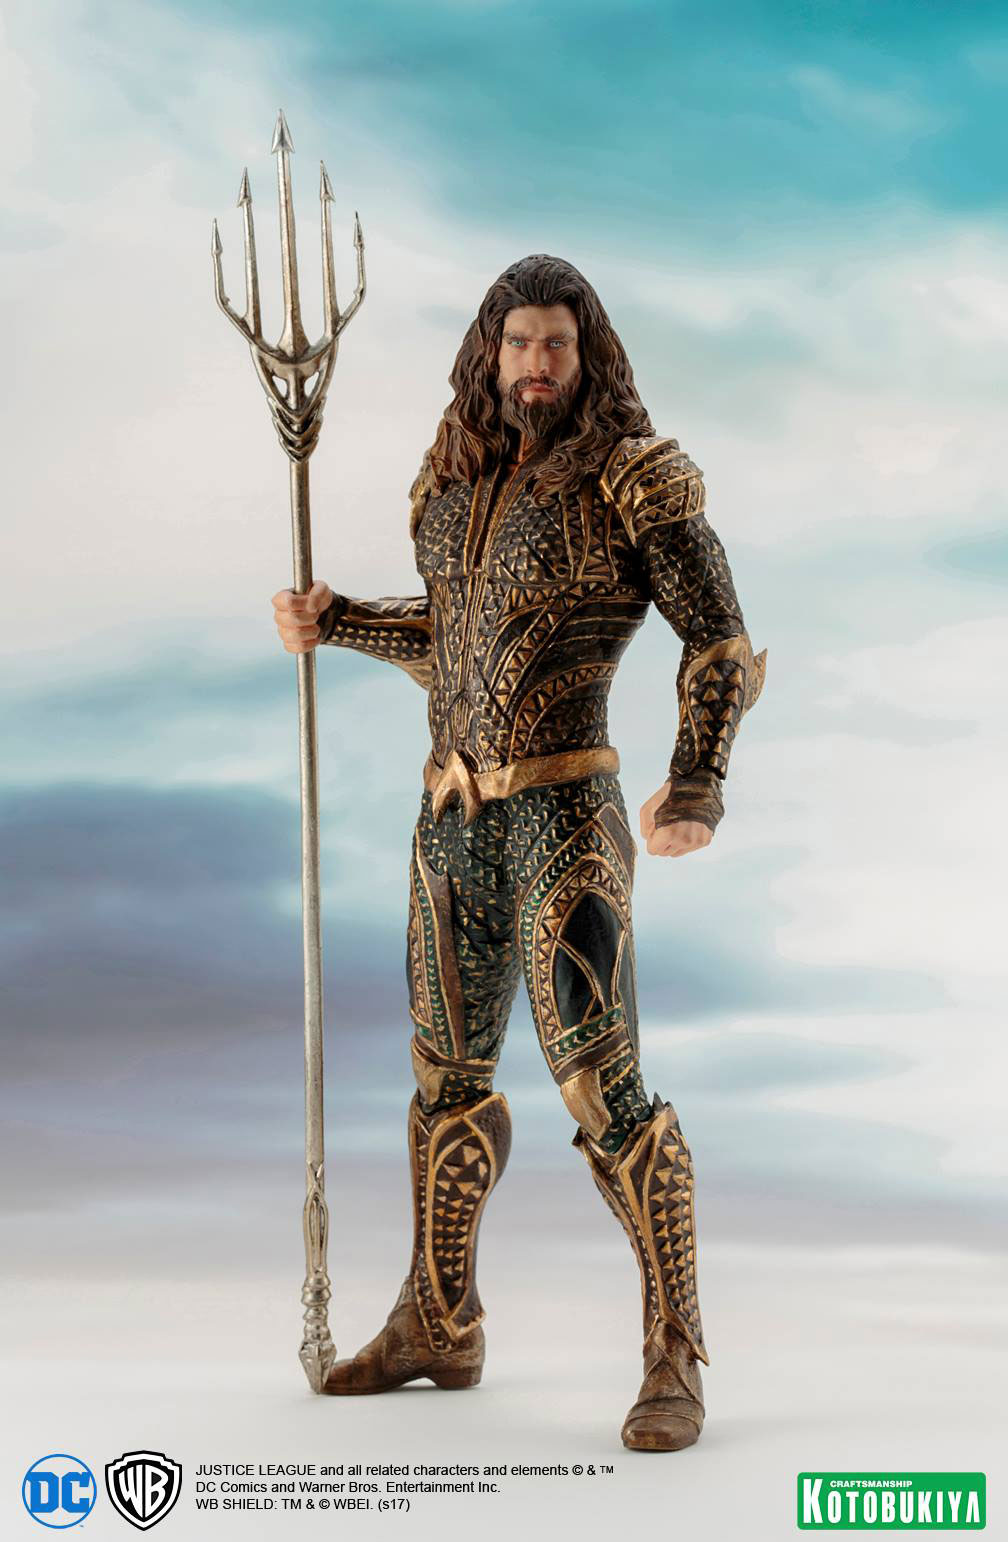 kotobukiya-justice-league-aquaman-statue